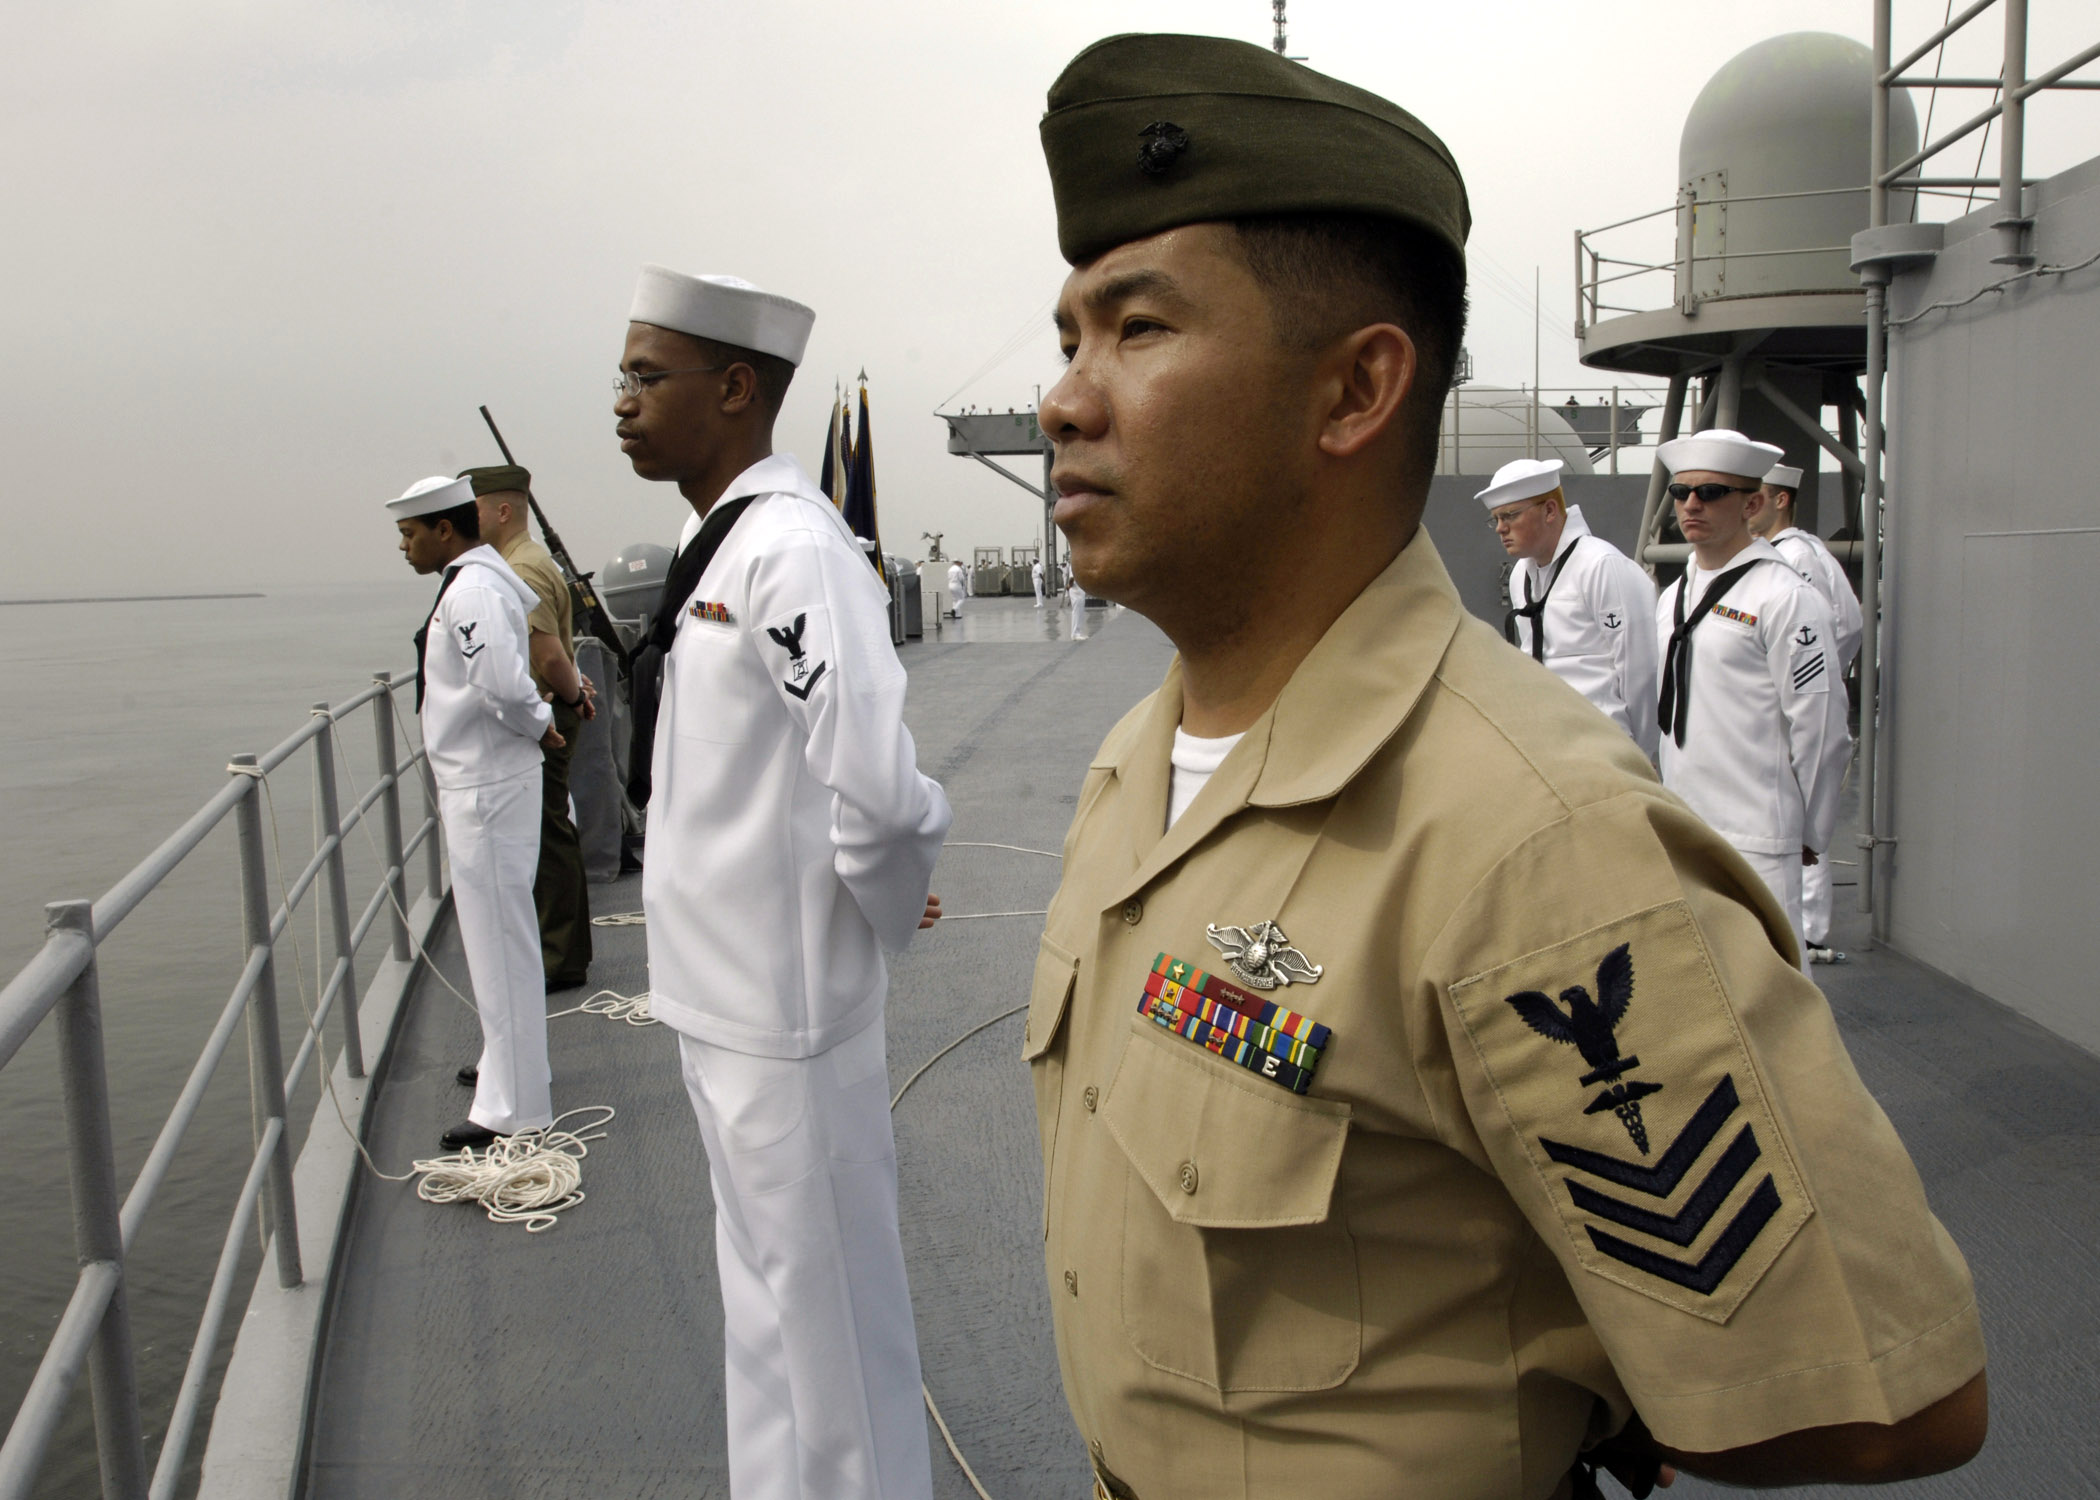 Uniforms of the United States Navy | Military Wiki | FANDOM